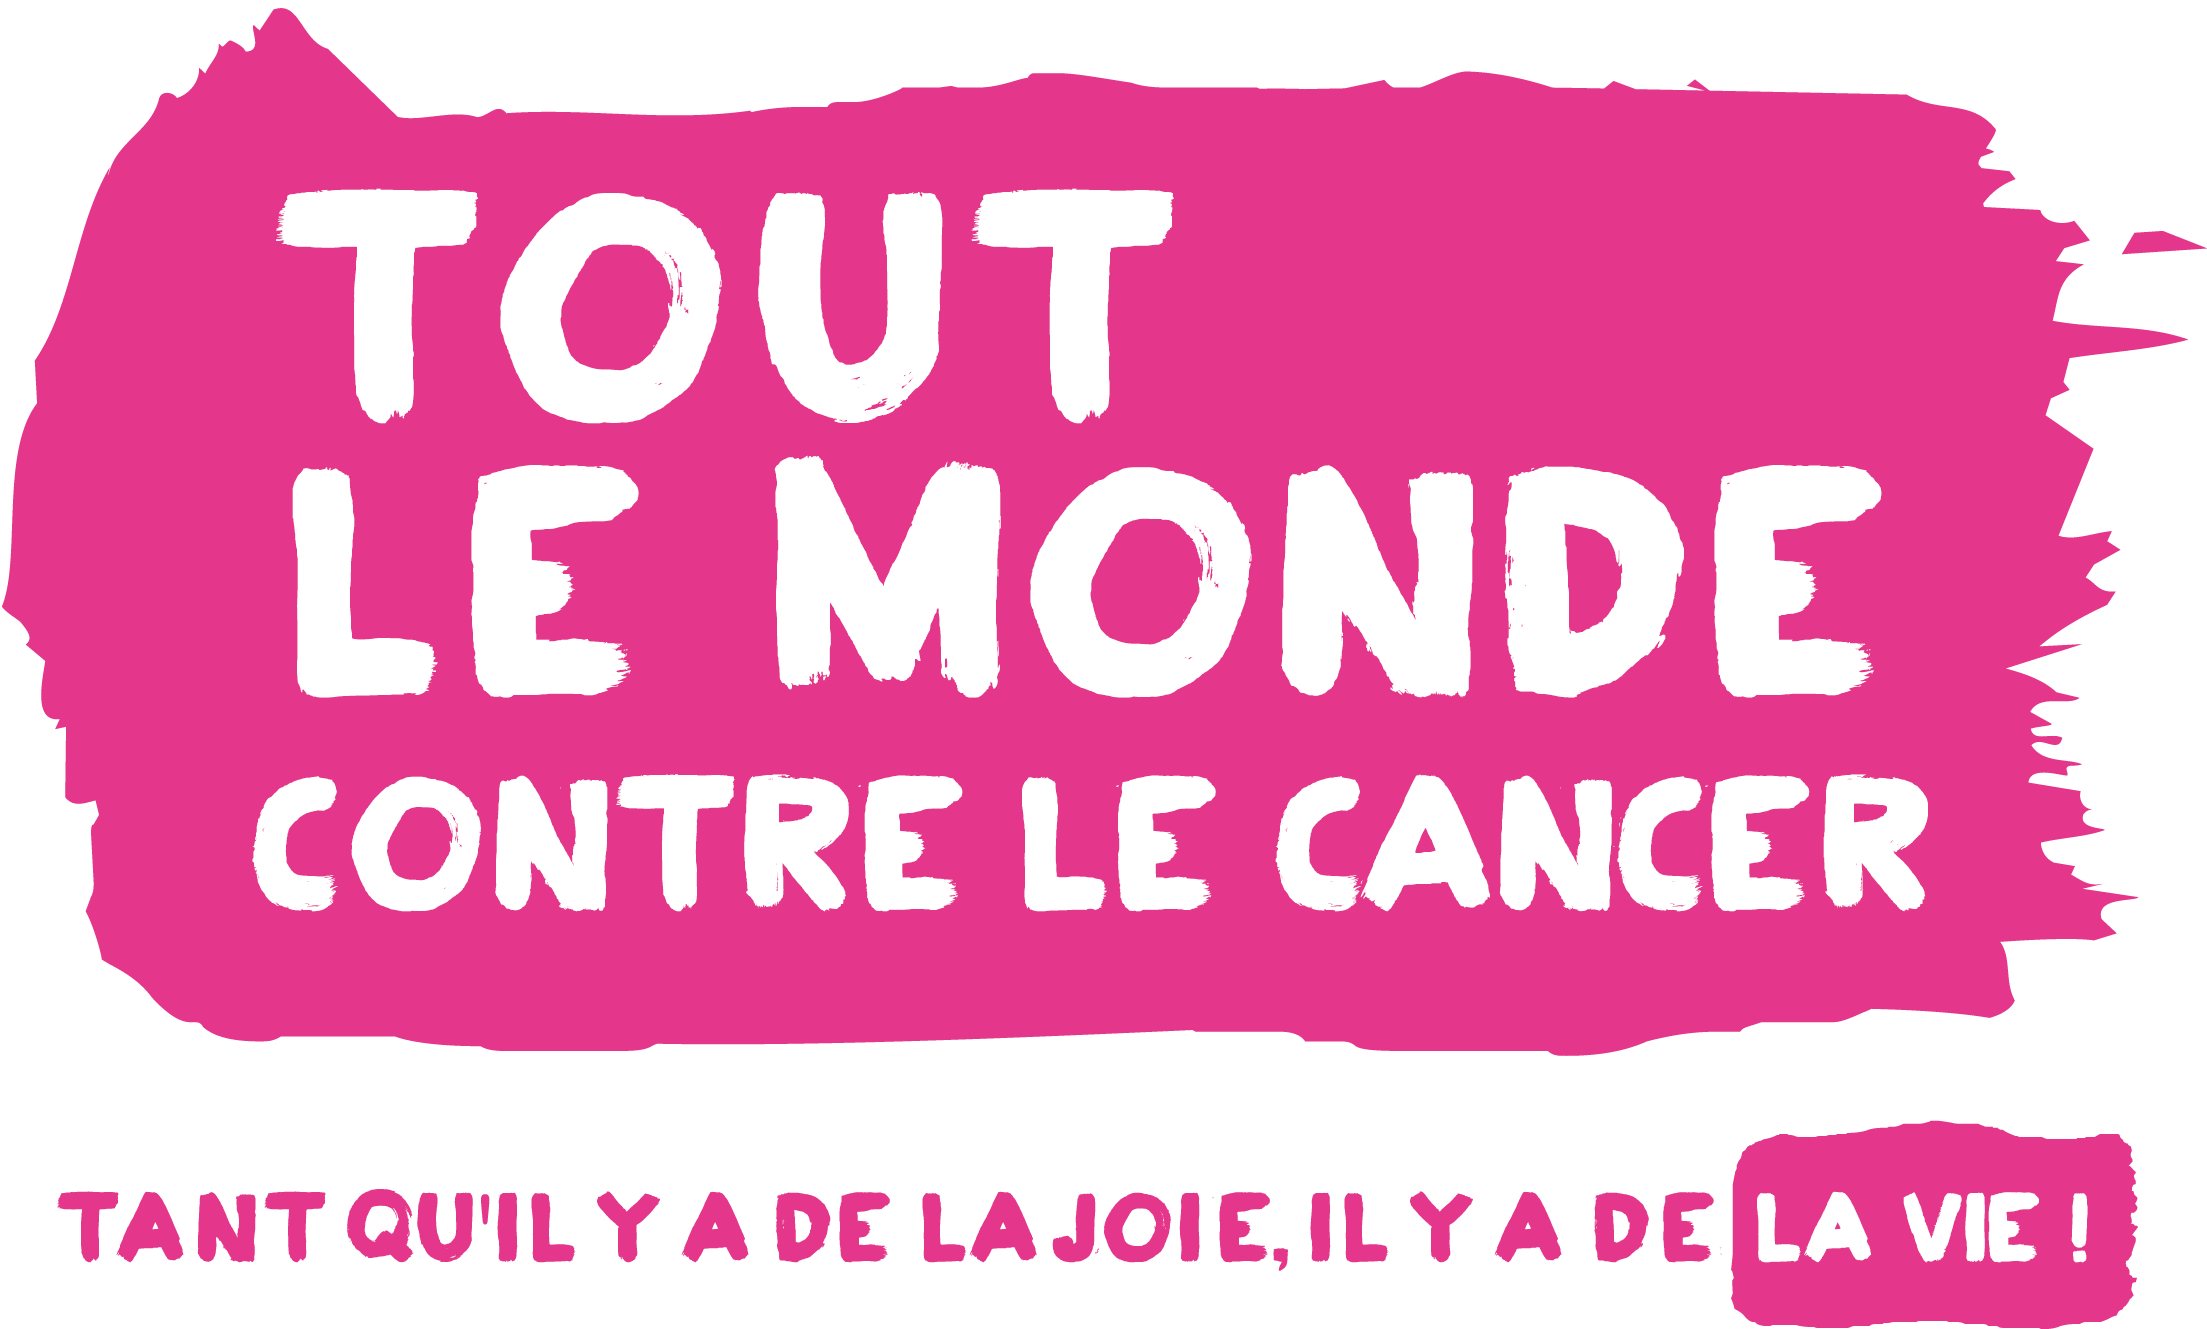 Association - Tout le monde contre le cancer